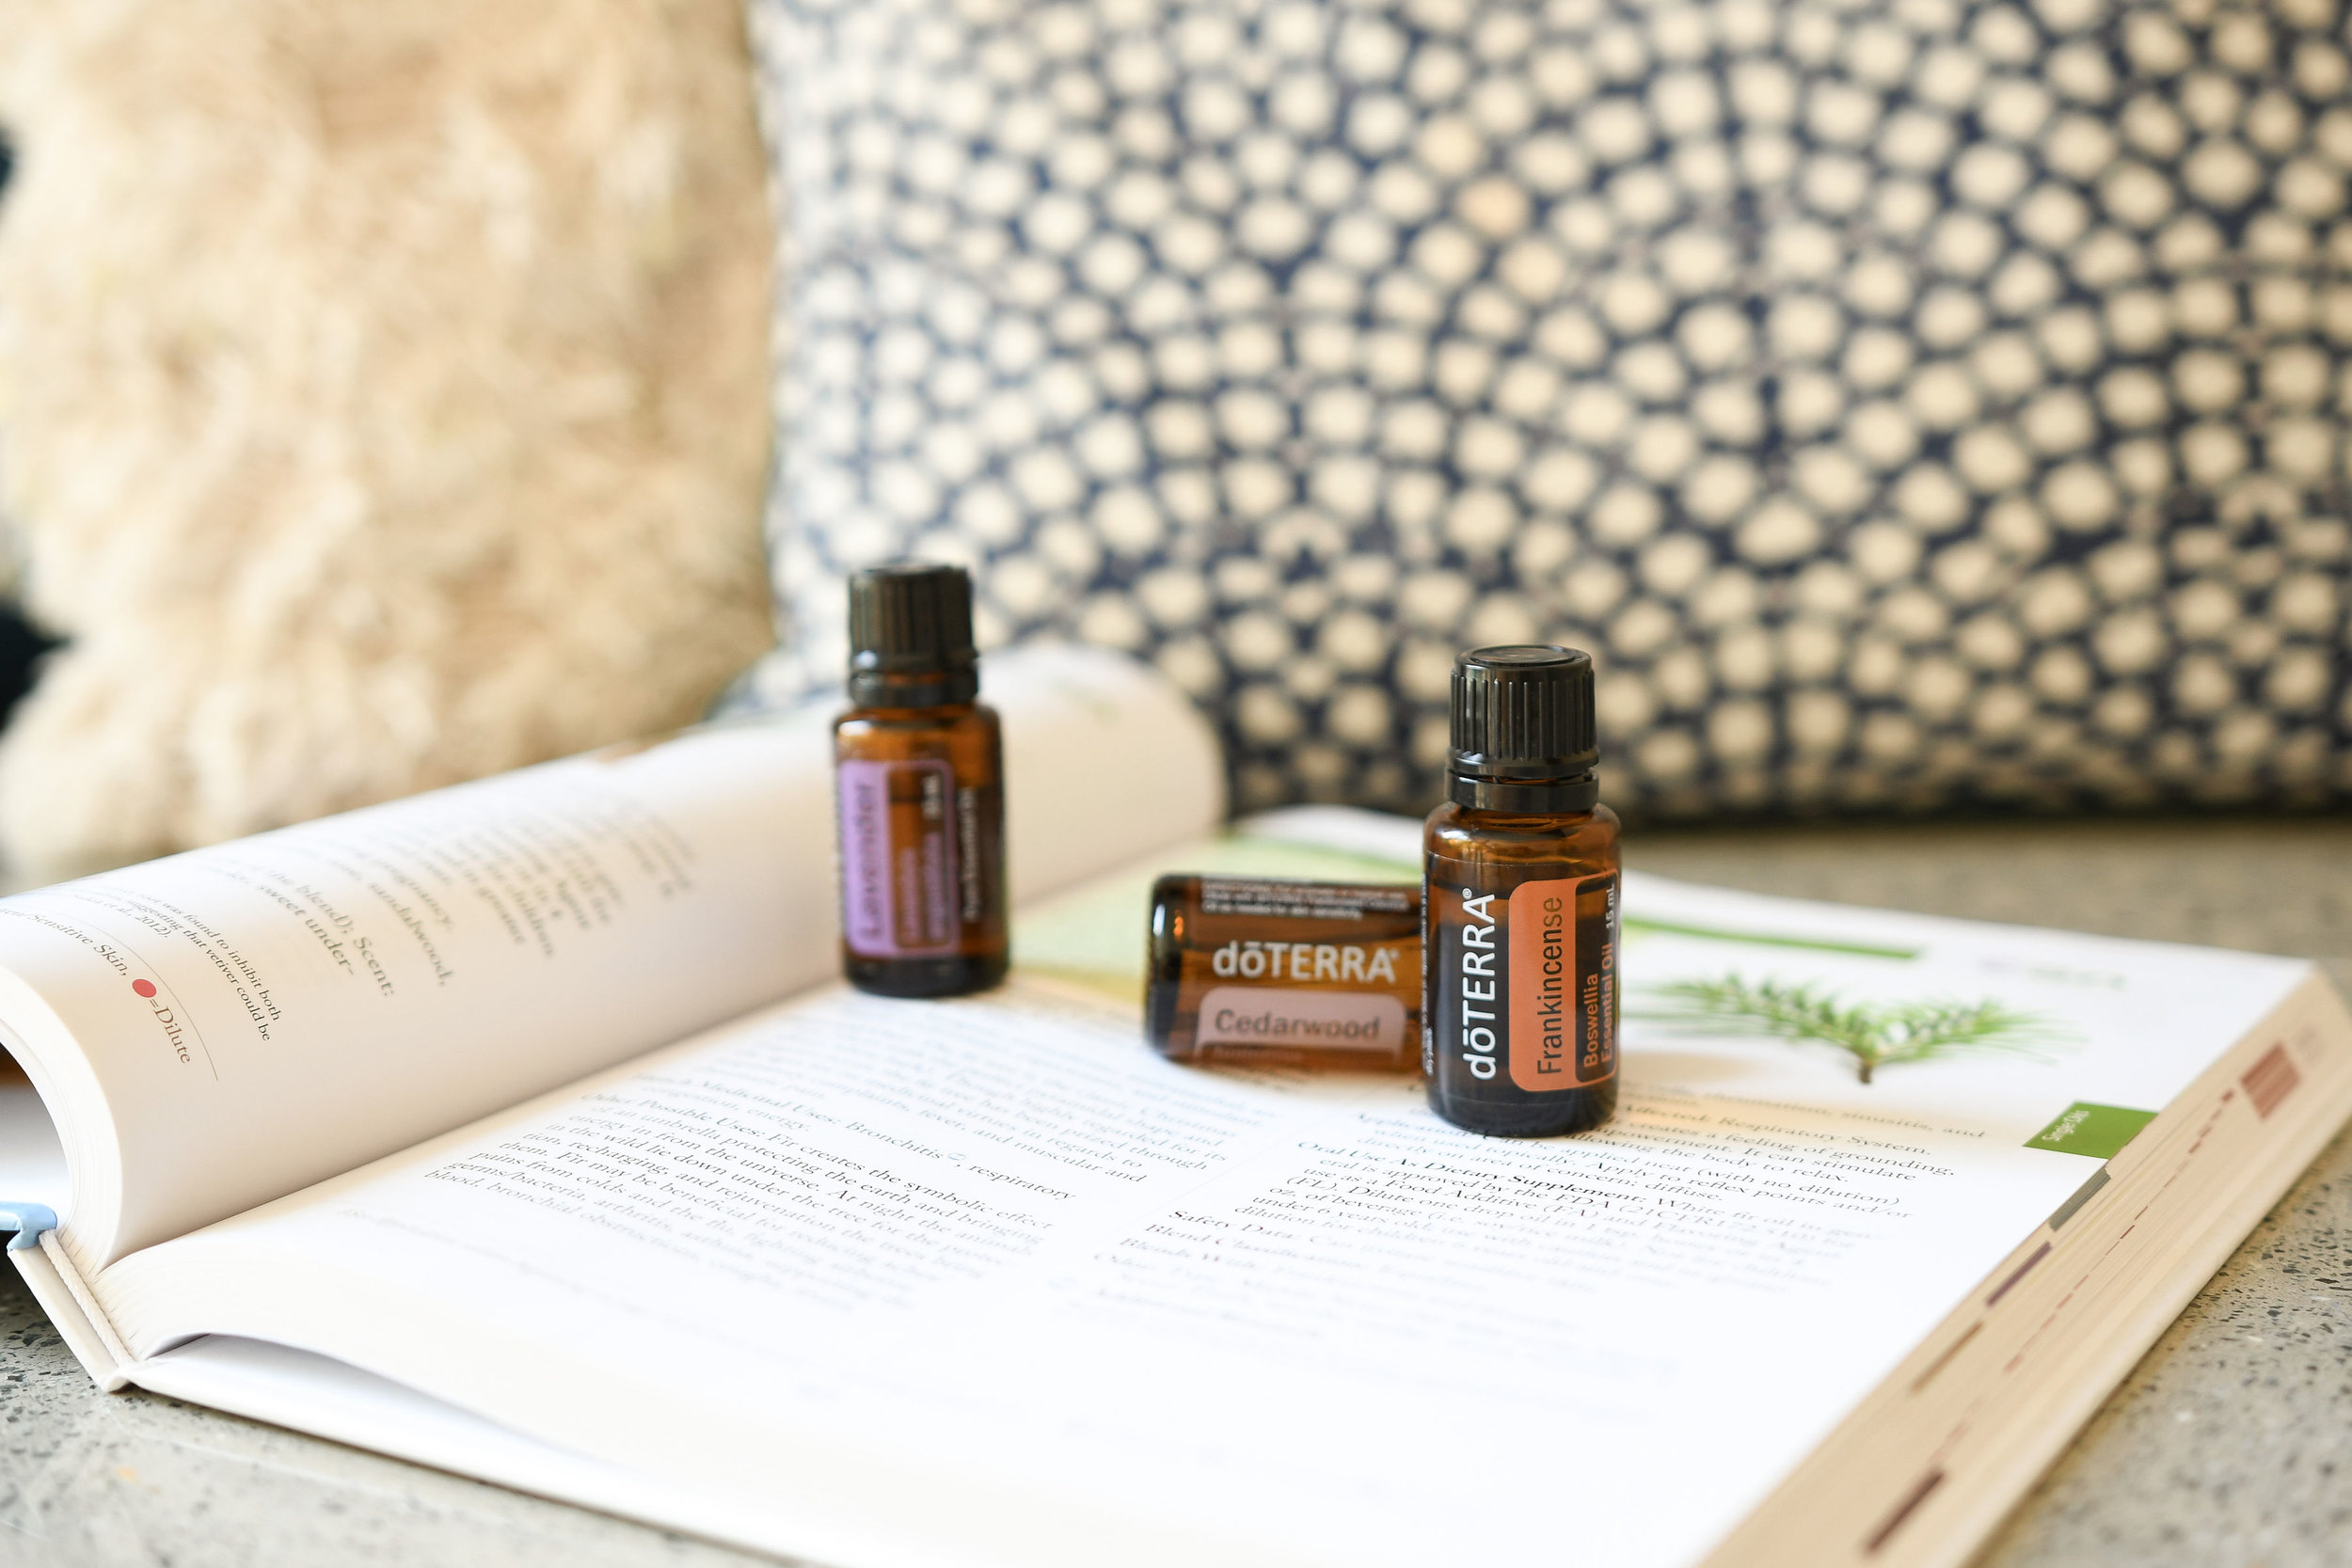 Chloe Dunn The Wellness Connection Doterra